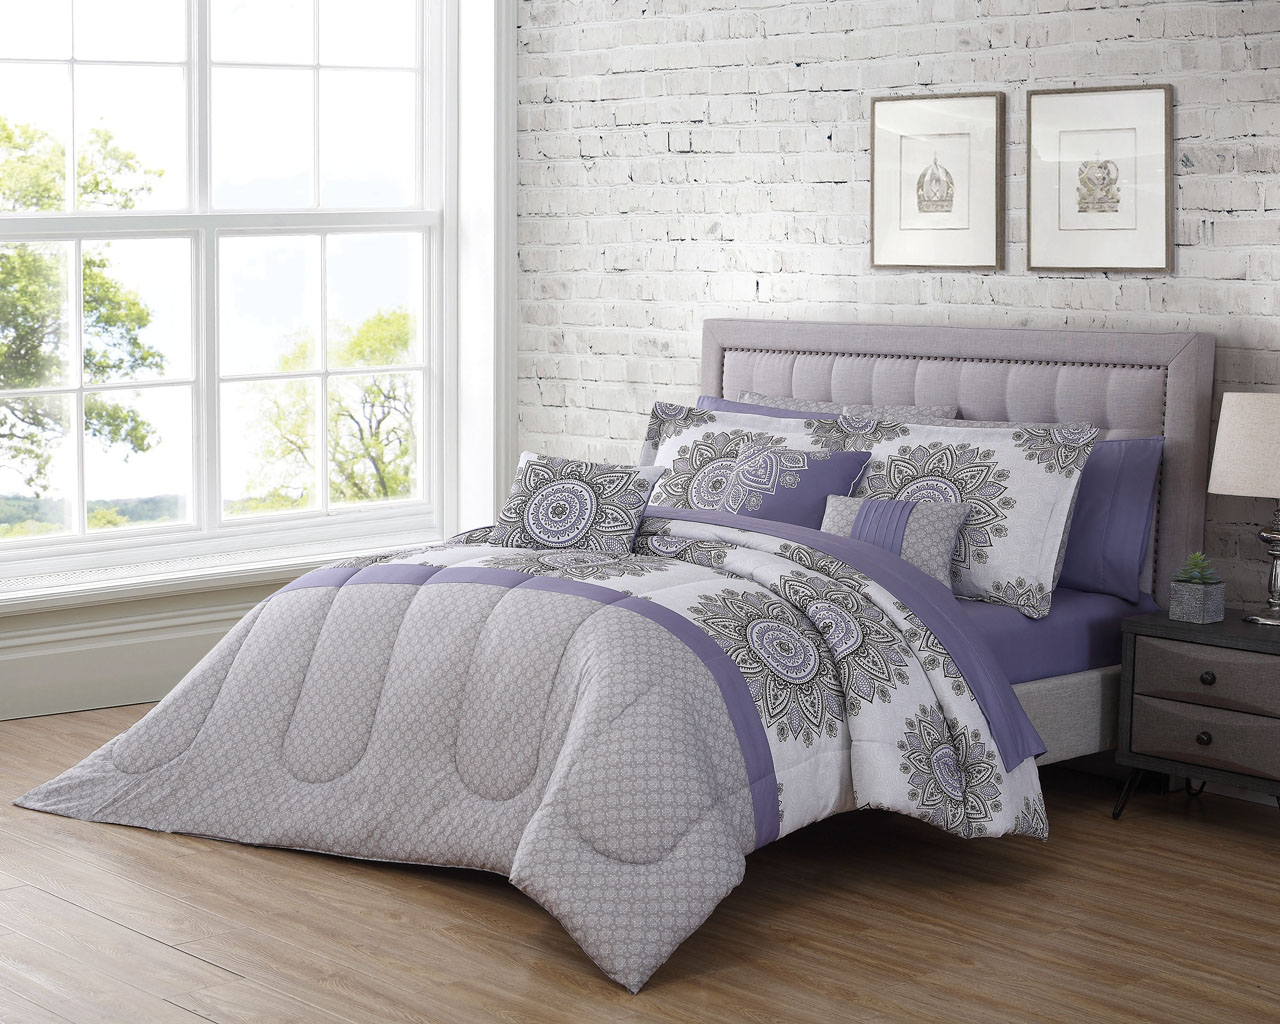 lea 6 8 comforter set in purple white bed bath 12 bali purple gray white comforter set 794